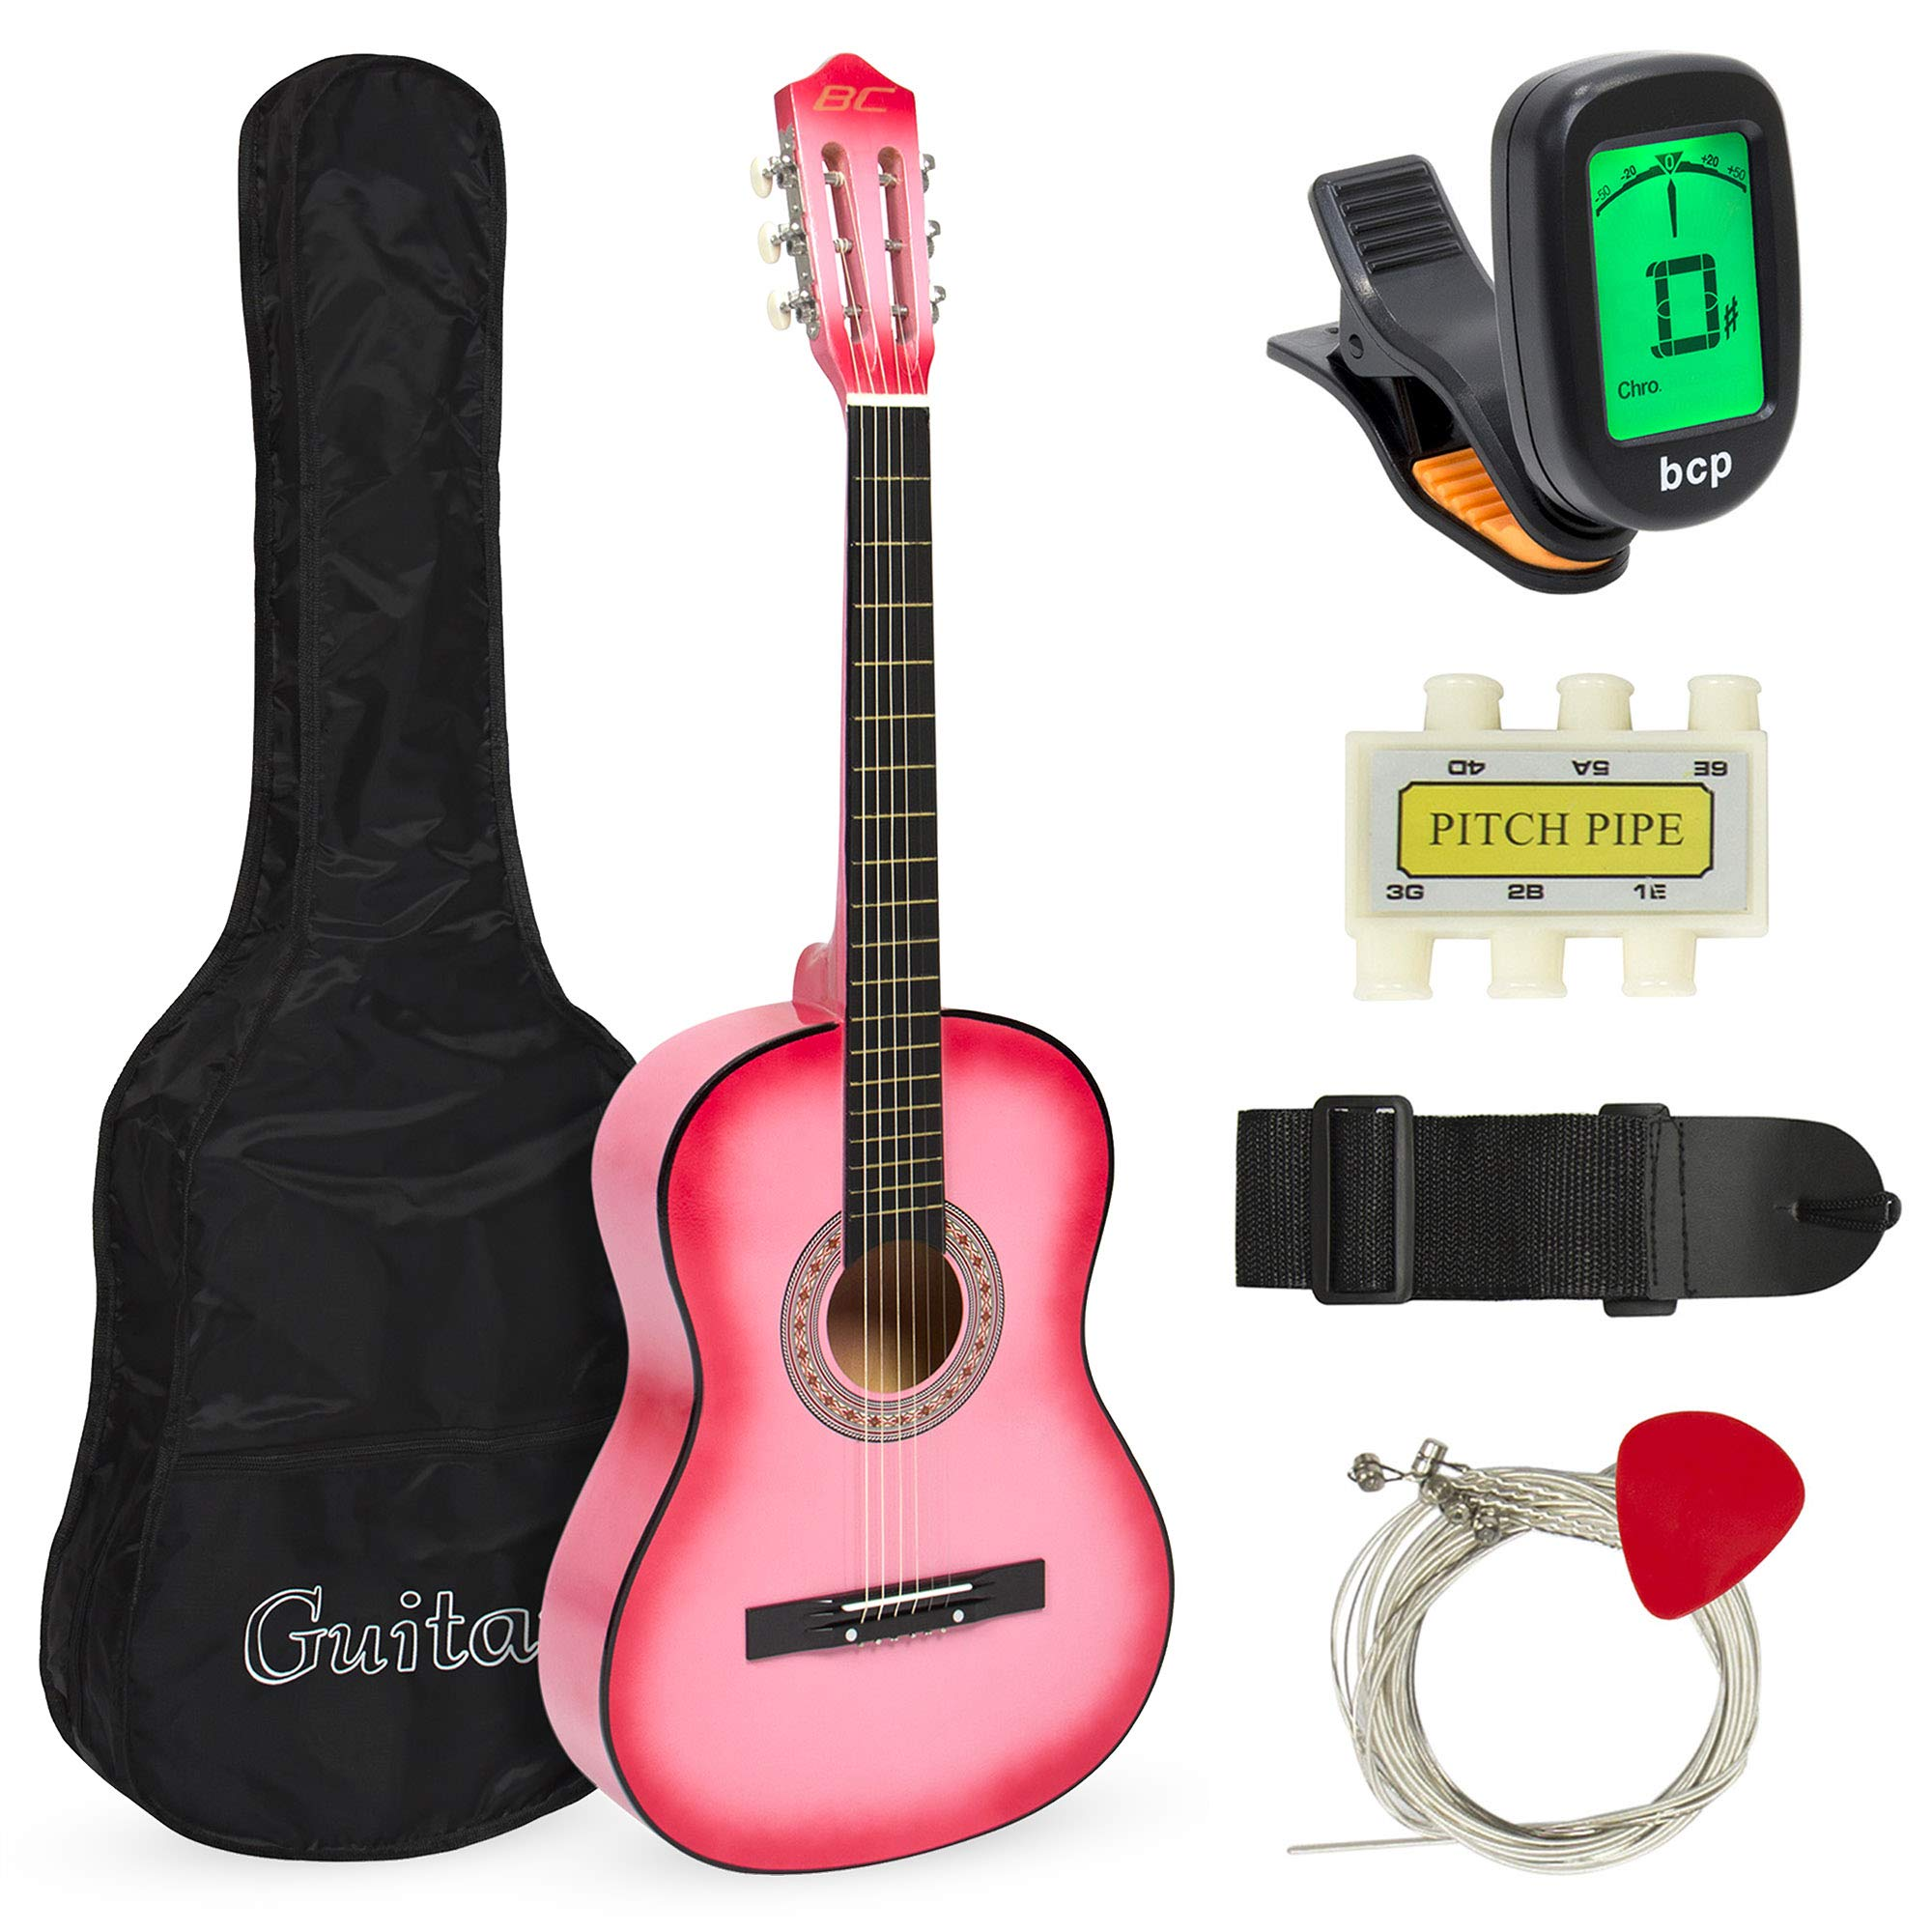 Best Choice Products 38in Beginner Acoustic Guitar Starter Kit w/ Case, Strap, Digital E-Tuner, Pick, Pitch Pipe, Strings - Pink by Best Choice Products